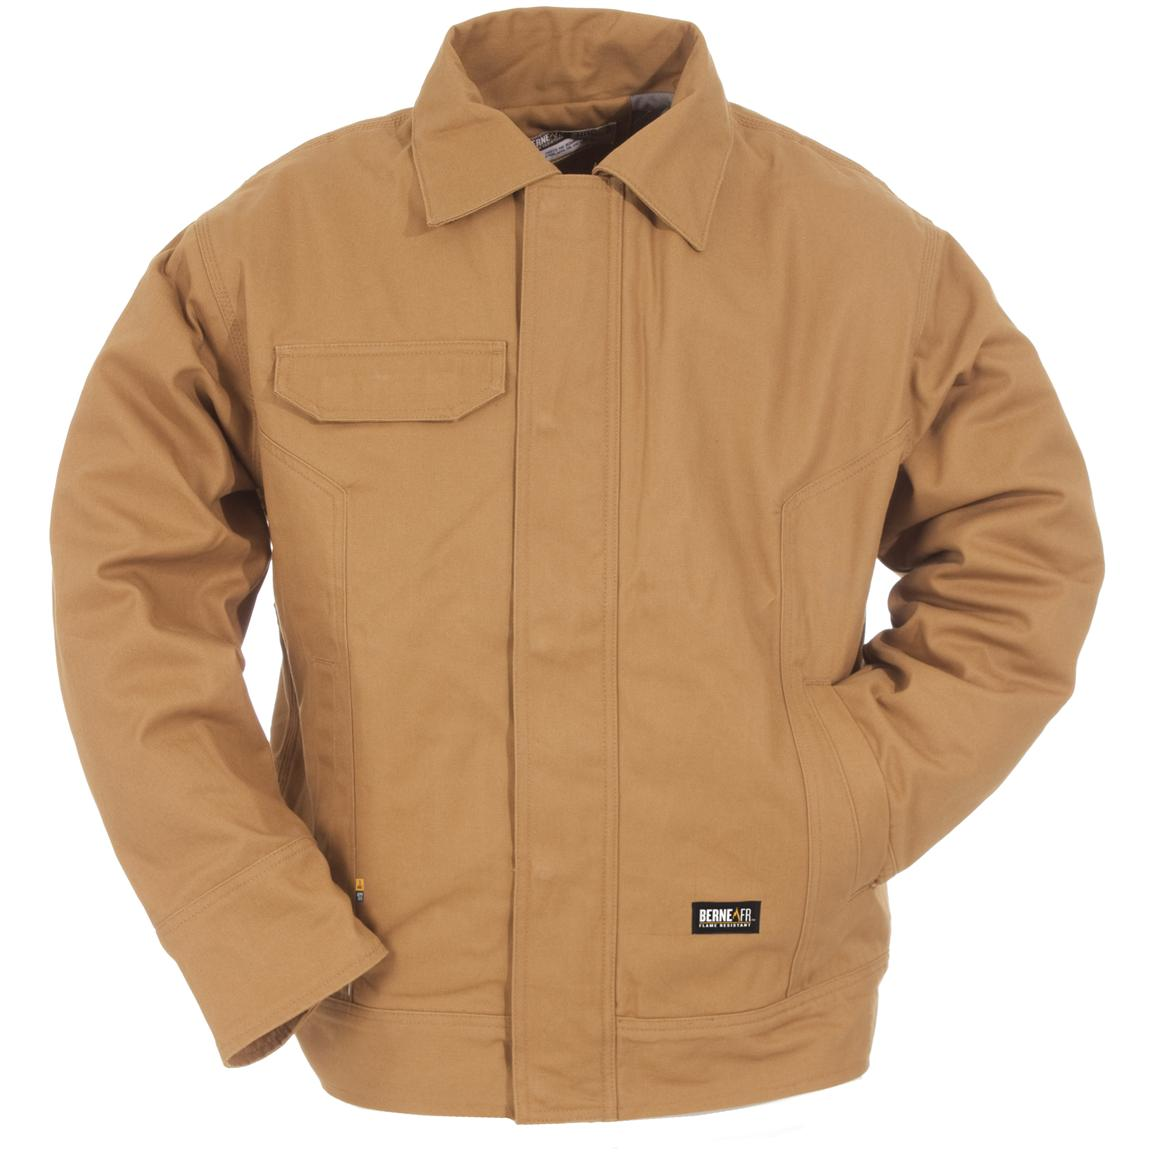 Berne® Flame-resistant Bomber Jacket, Brown